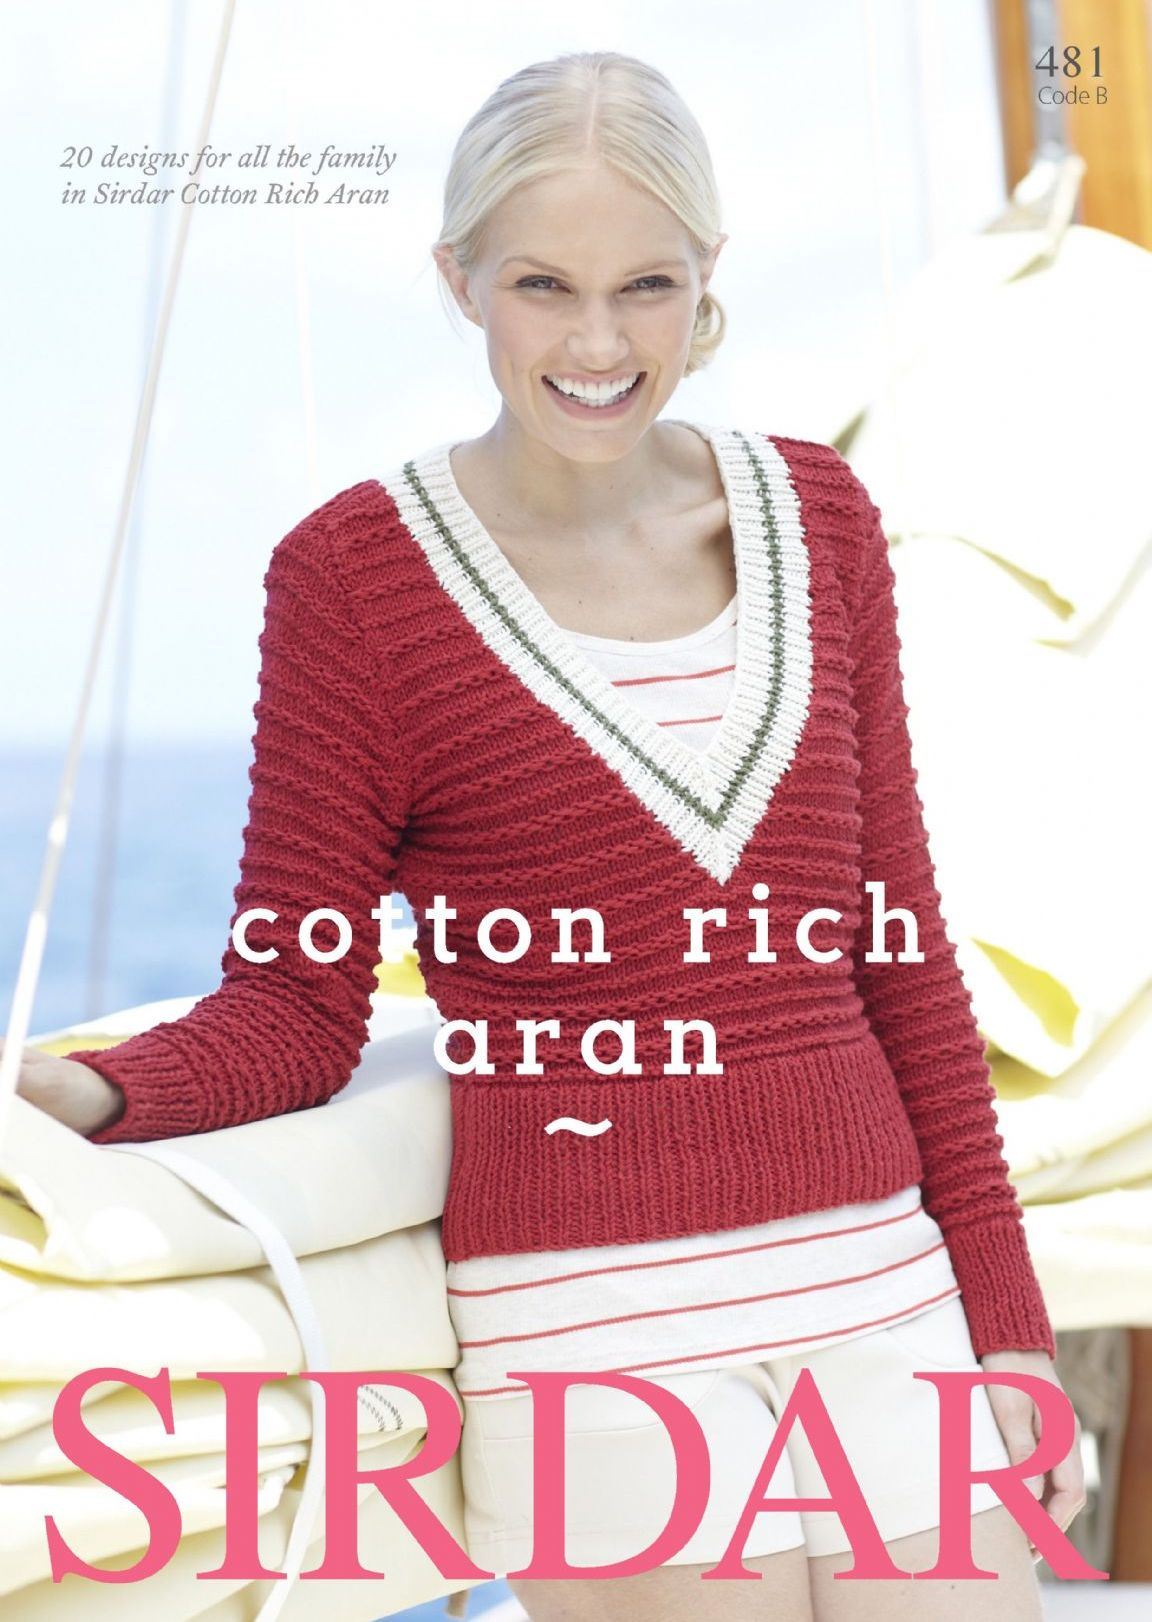 481 - SIRDAR COTTON RICH ARAN KNITTING PATTERN BOOKLET FOR ALL THE FAMILY